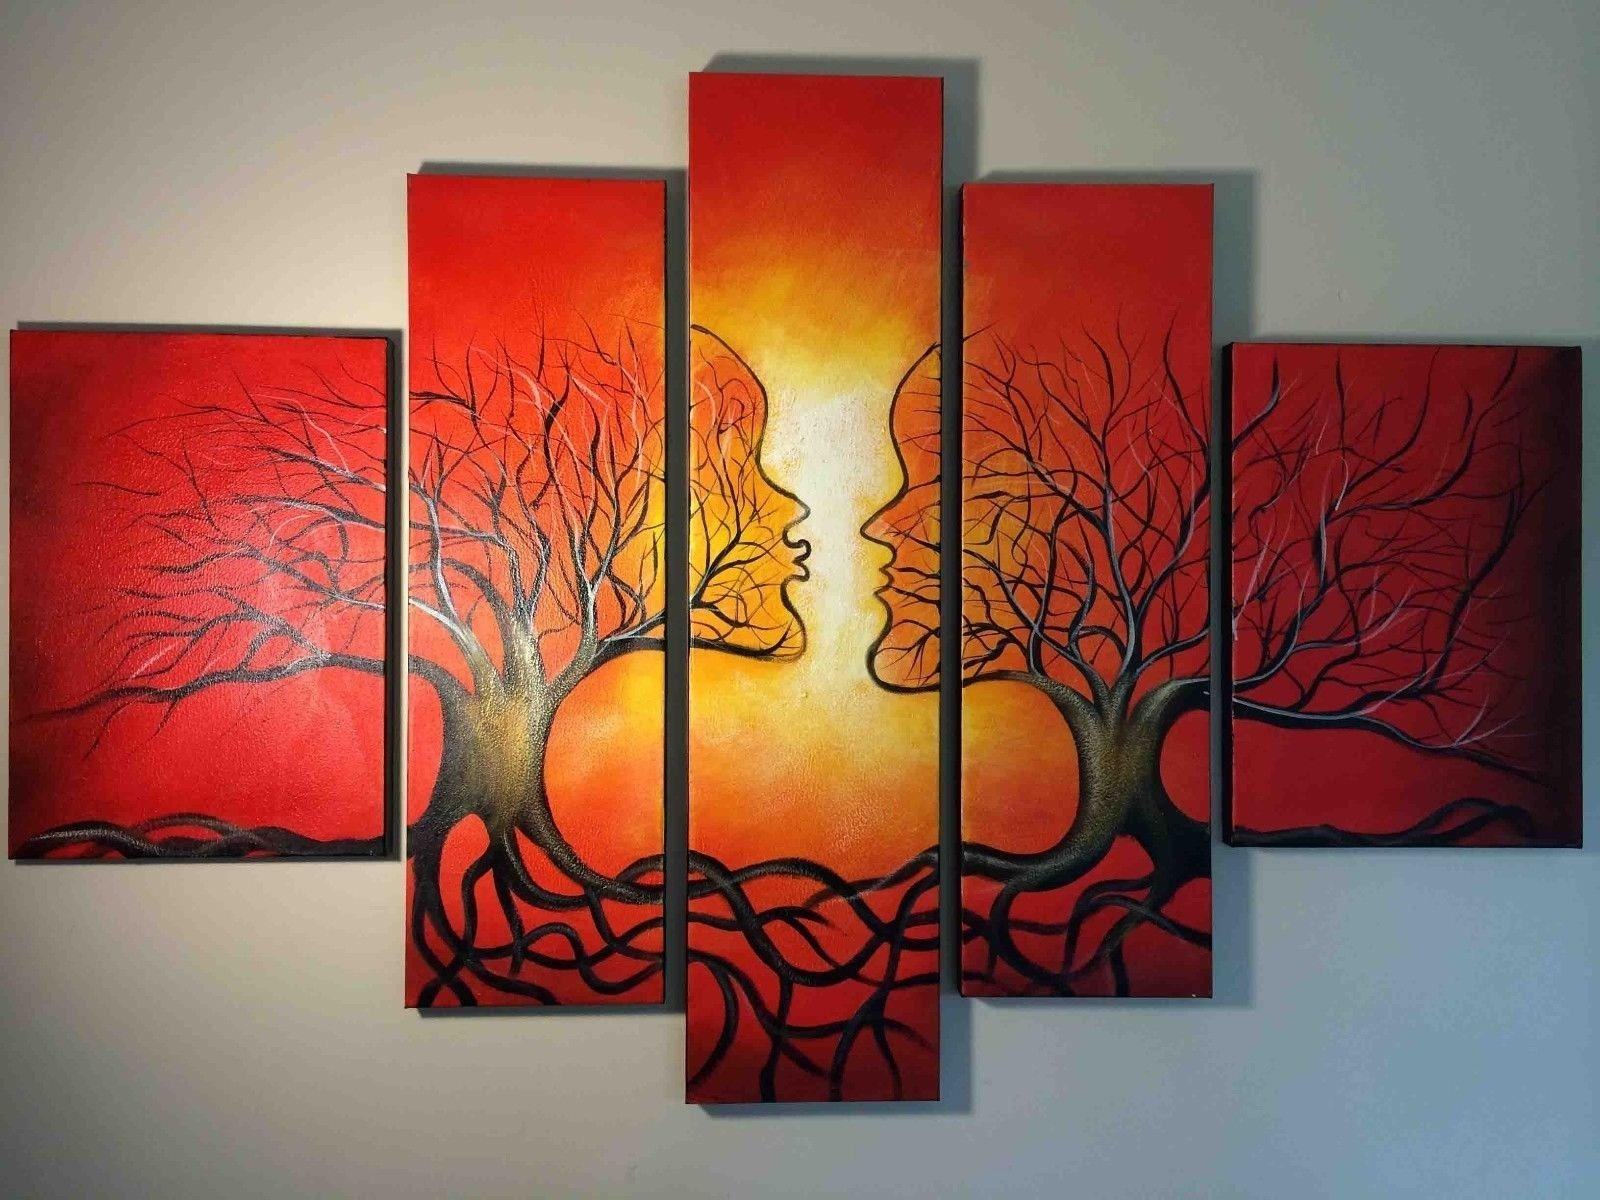 Wall Art Designs: Abstract Wall Art Red Abstract Oil Painting With Most Up To Date Large Red Canvas Wall Art (View 8 of 15)